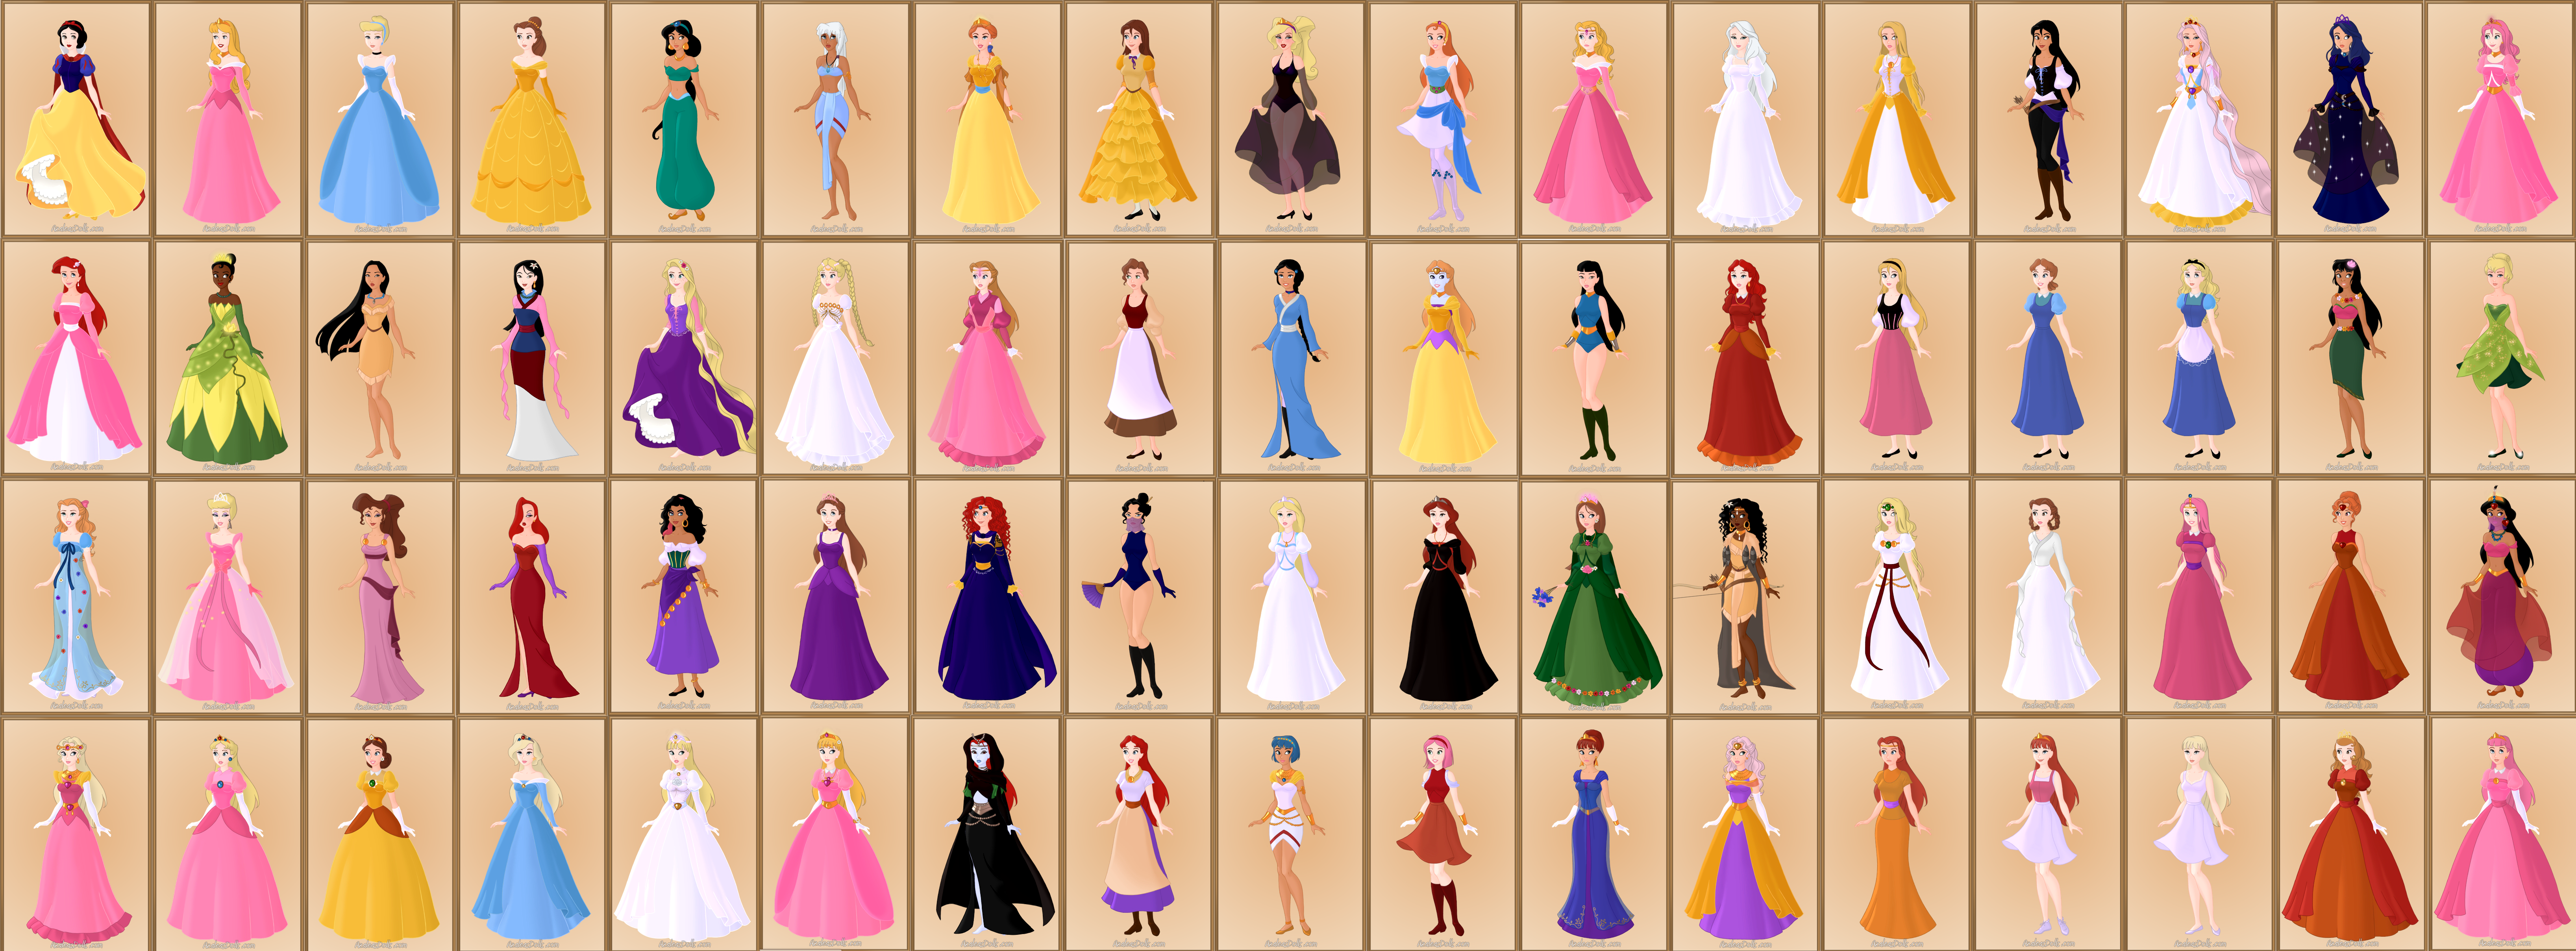 Disney Princess Images With Their Names